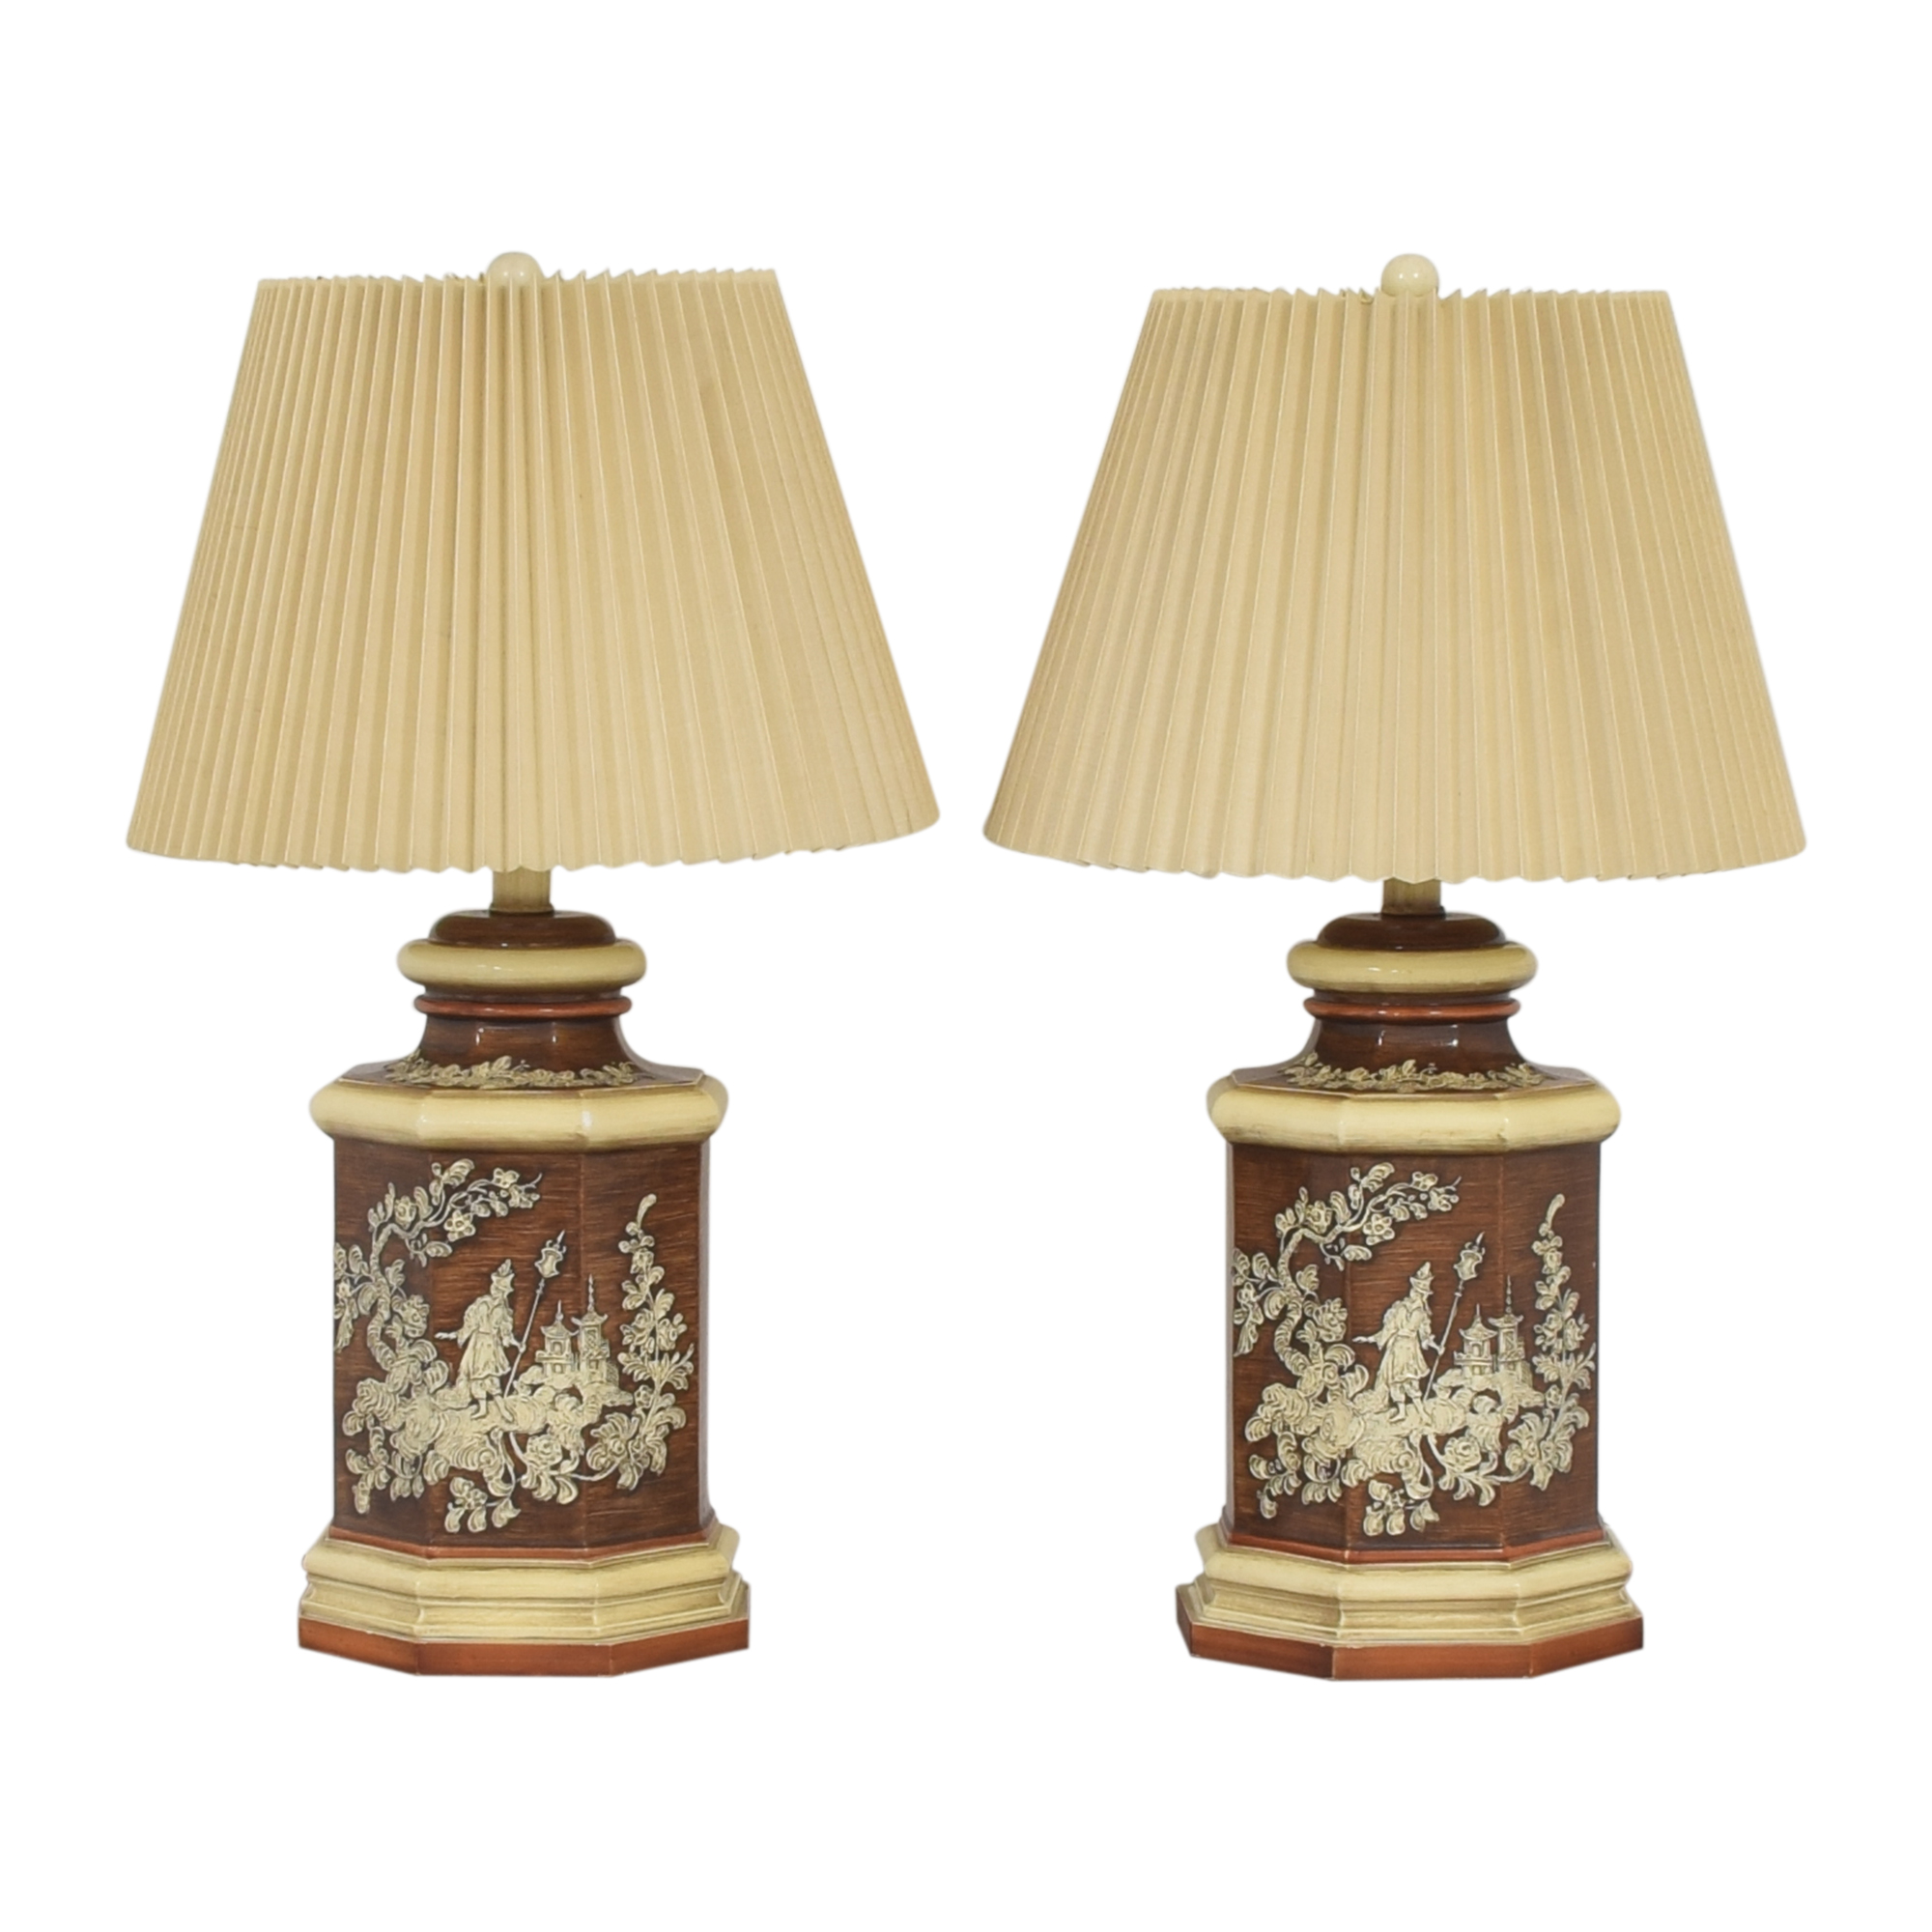 Heritage Heritage Decorative Table Lamps price